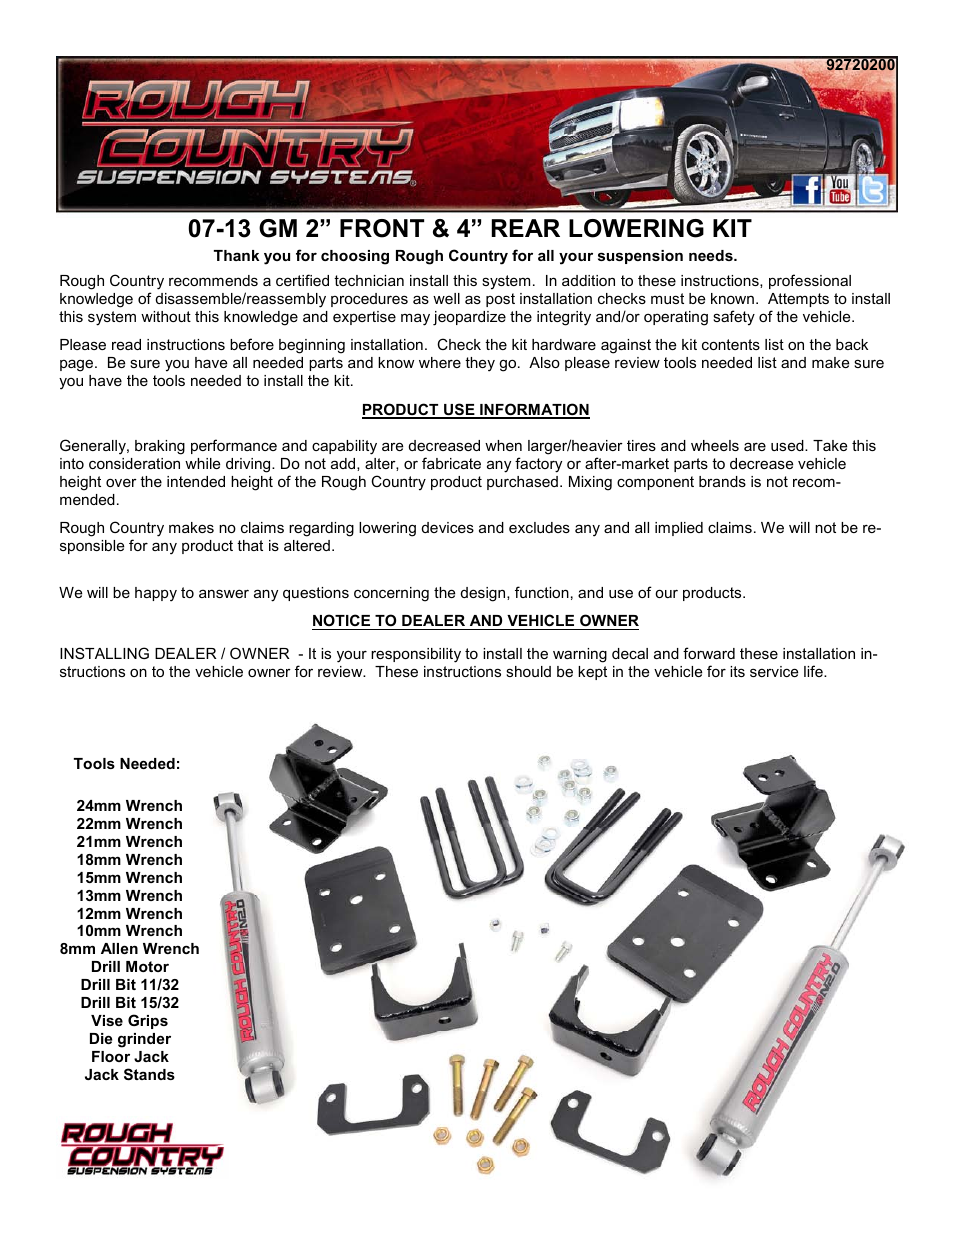 Rough Country 720 20 User Manual | 7 pages